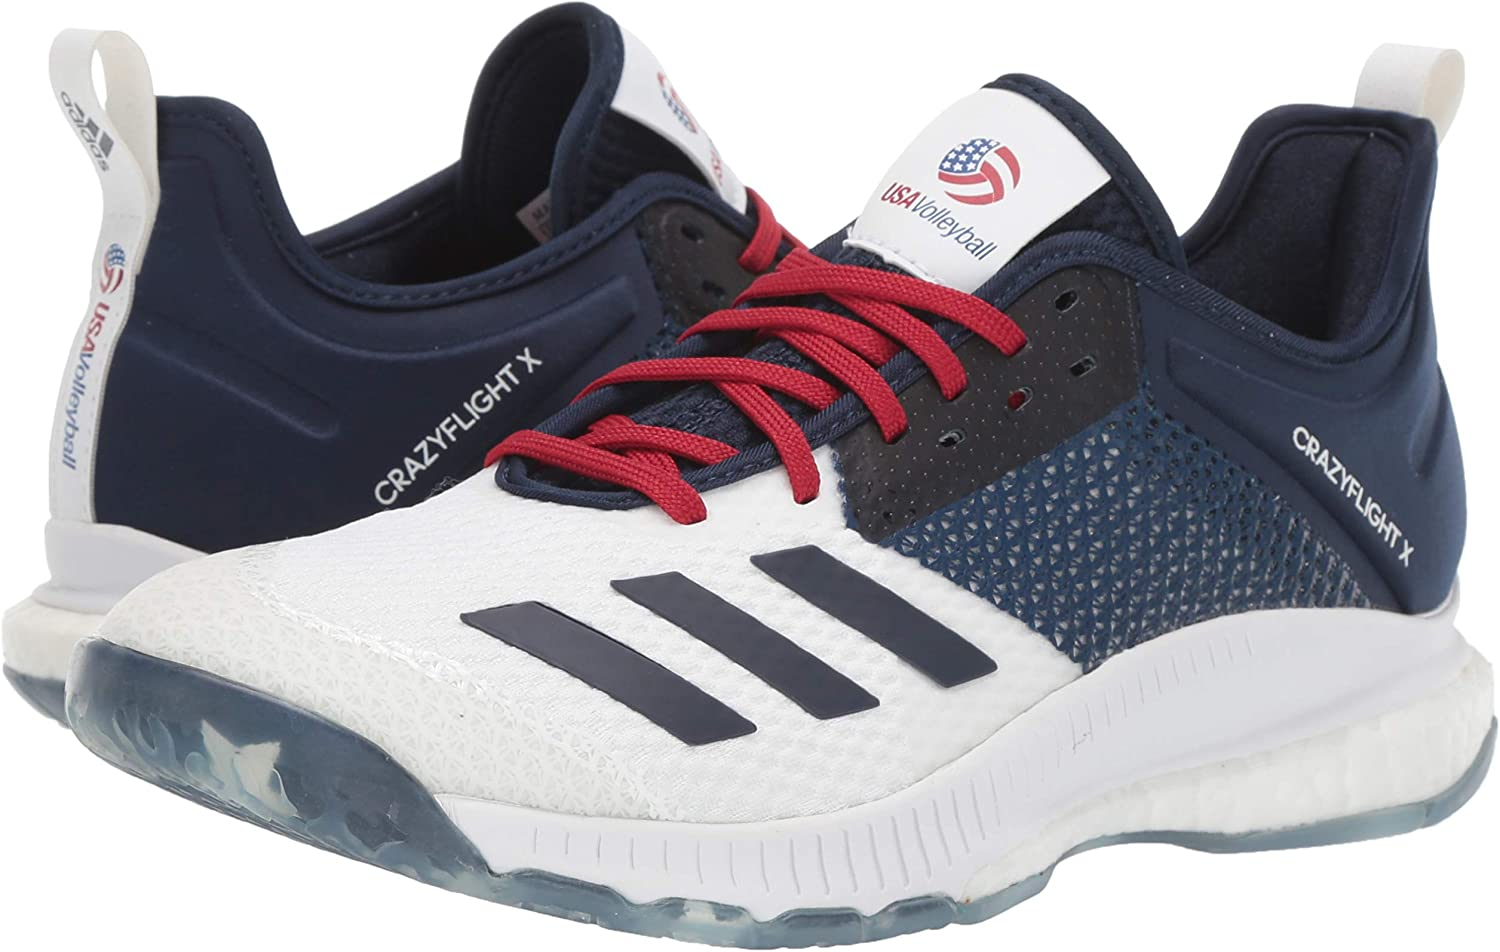 adidas Damen Crazyflight X 3 Usa Volleyball Shoes